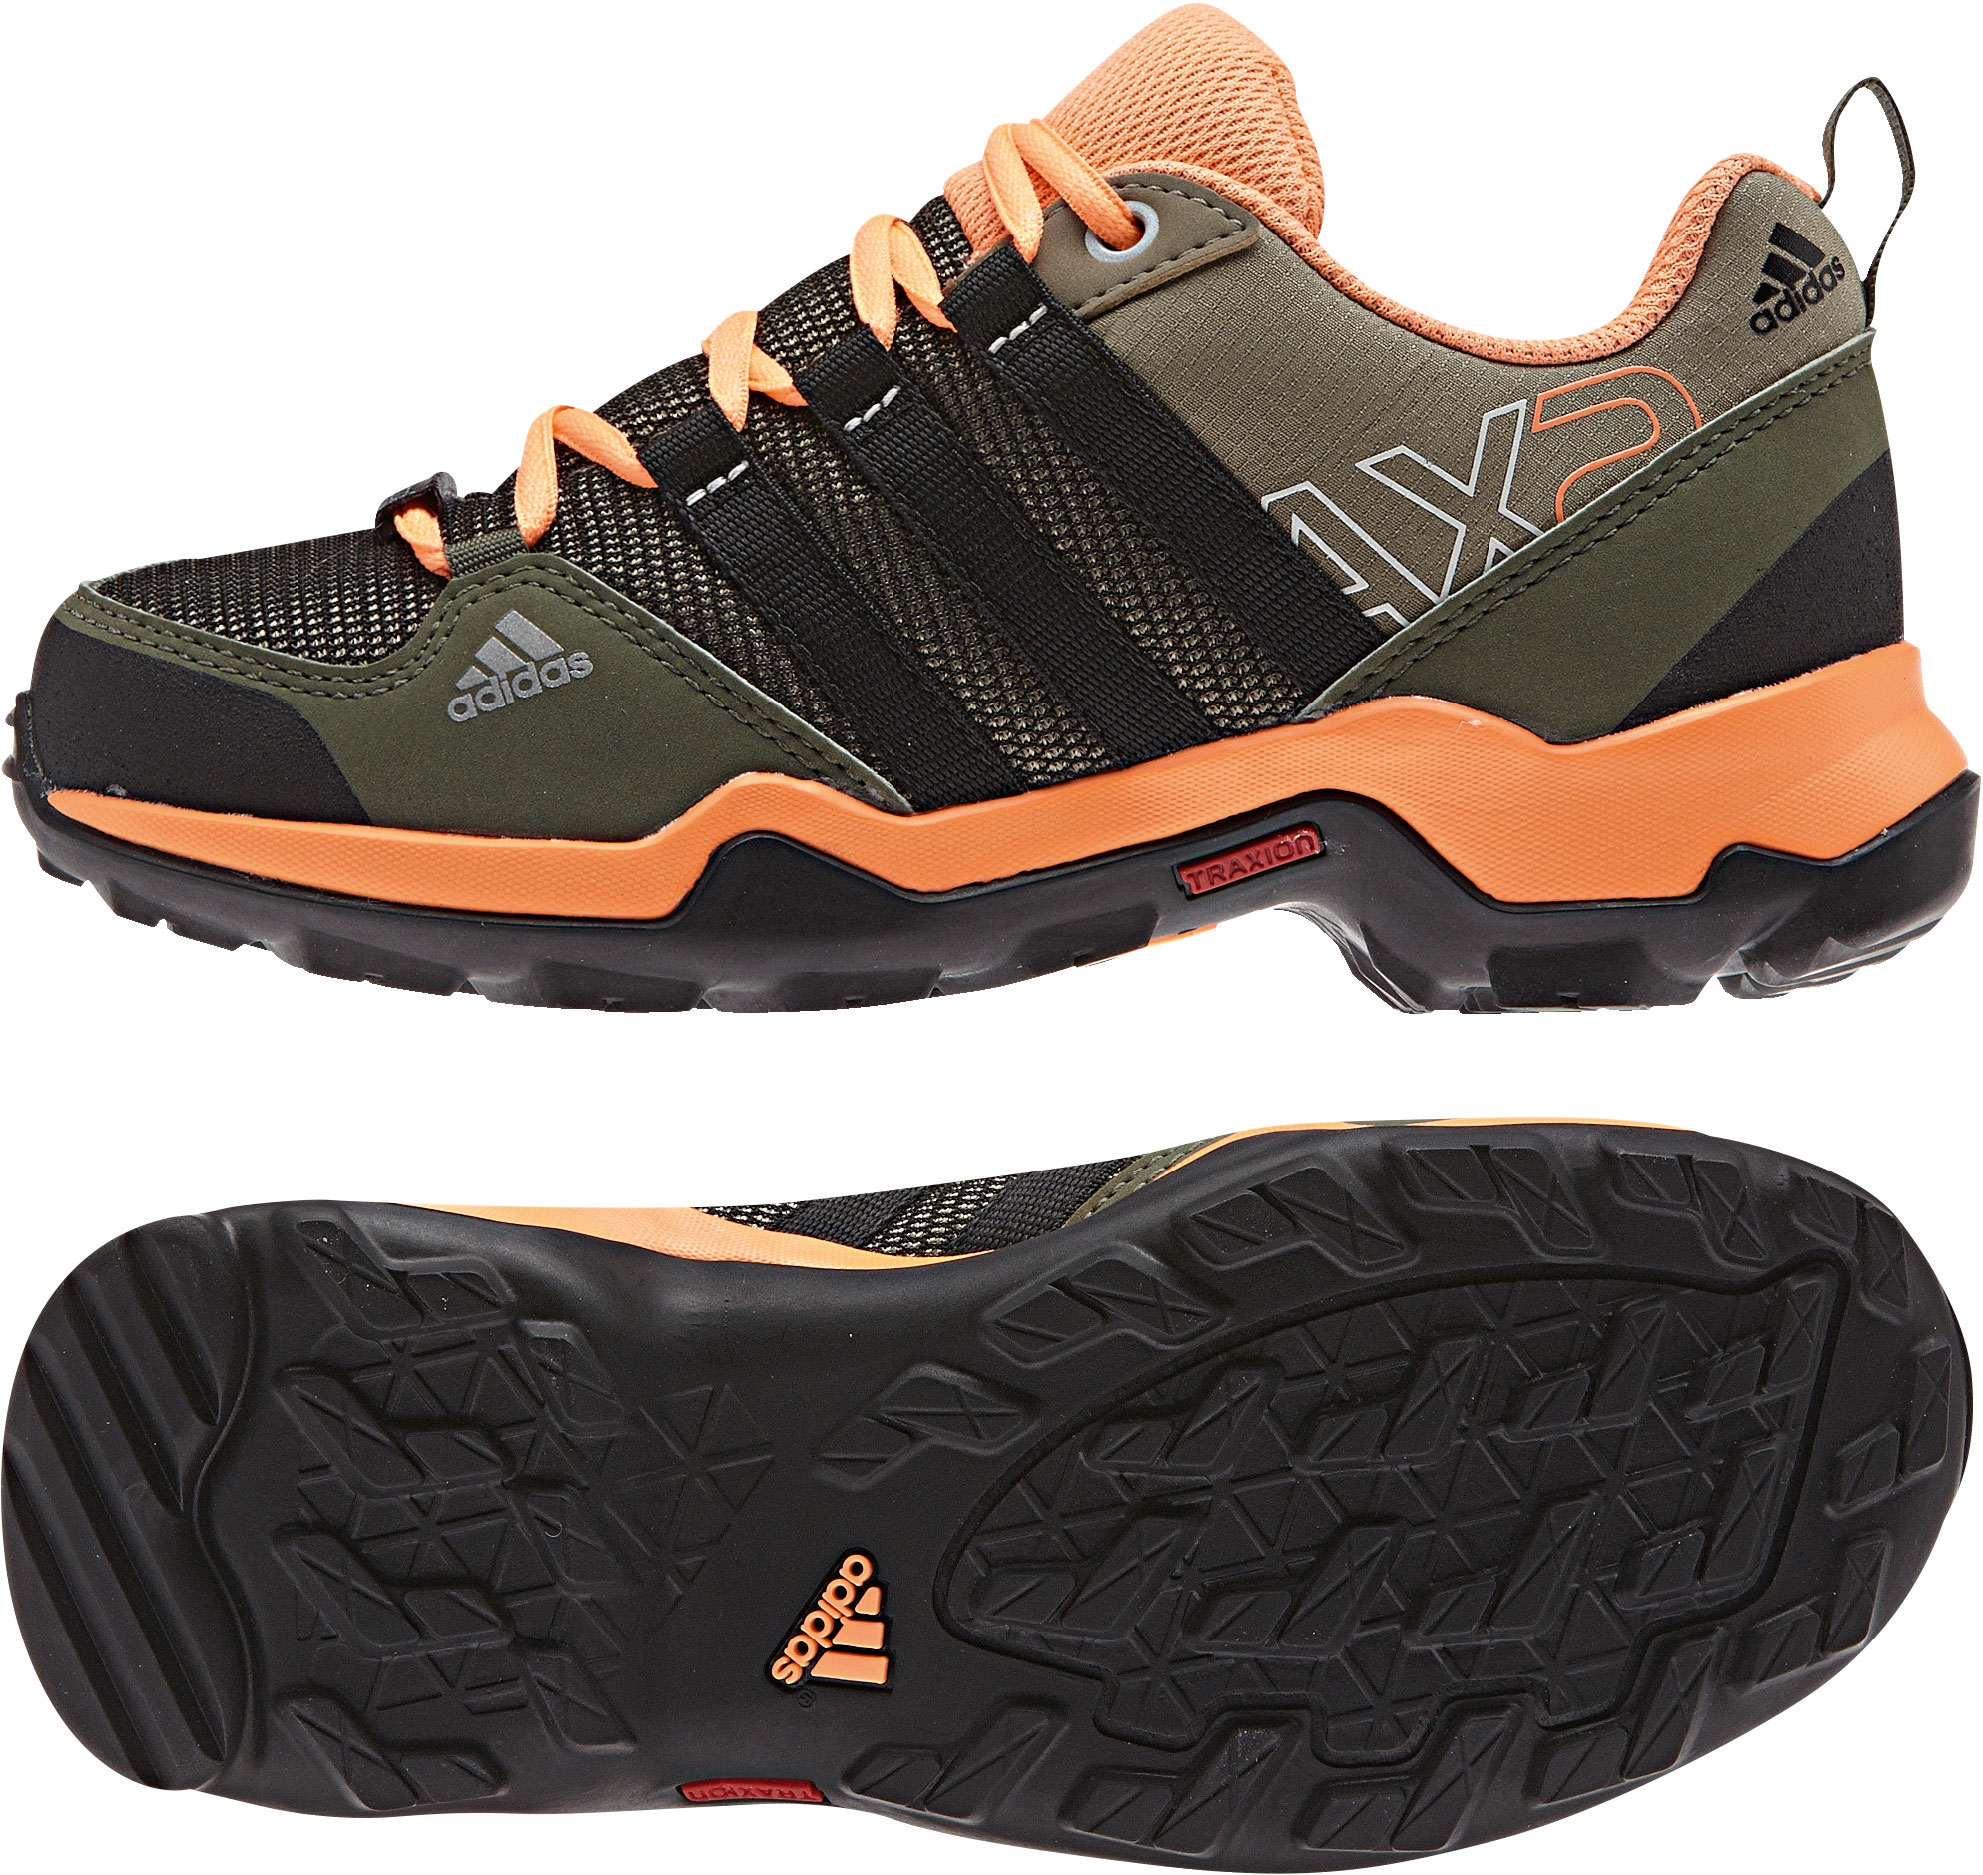 Kinder Outdoorschuh AX2 CP K